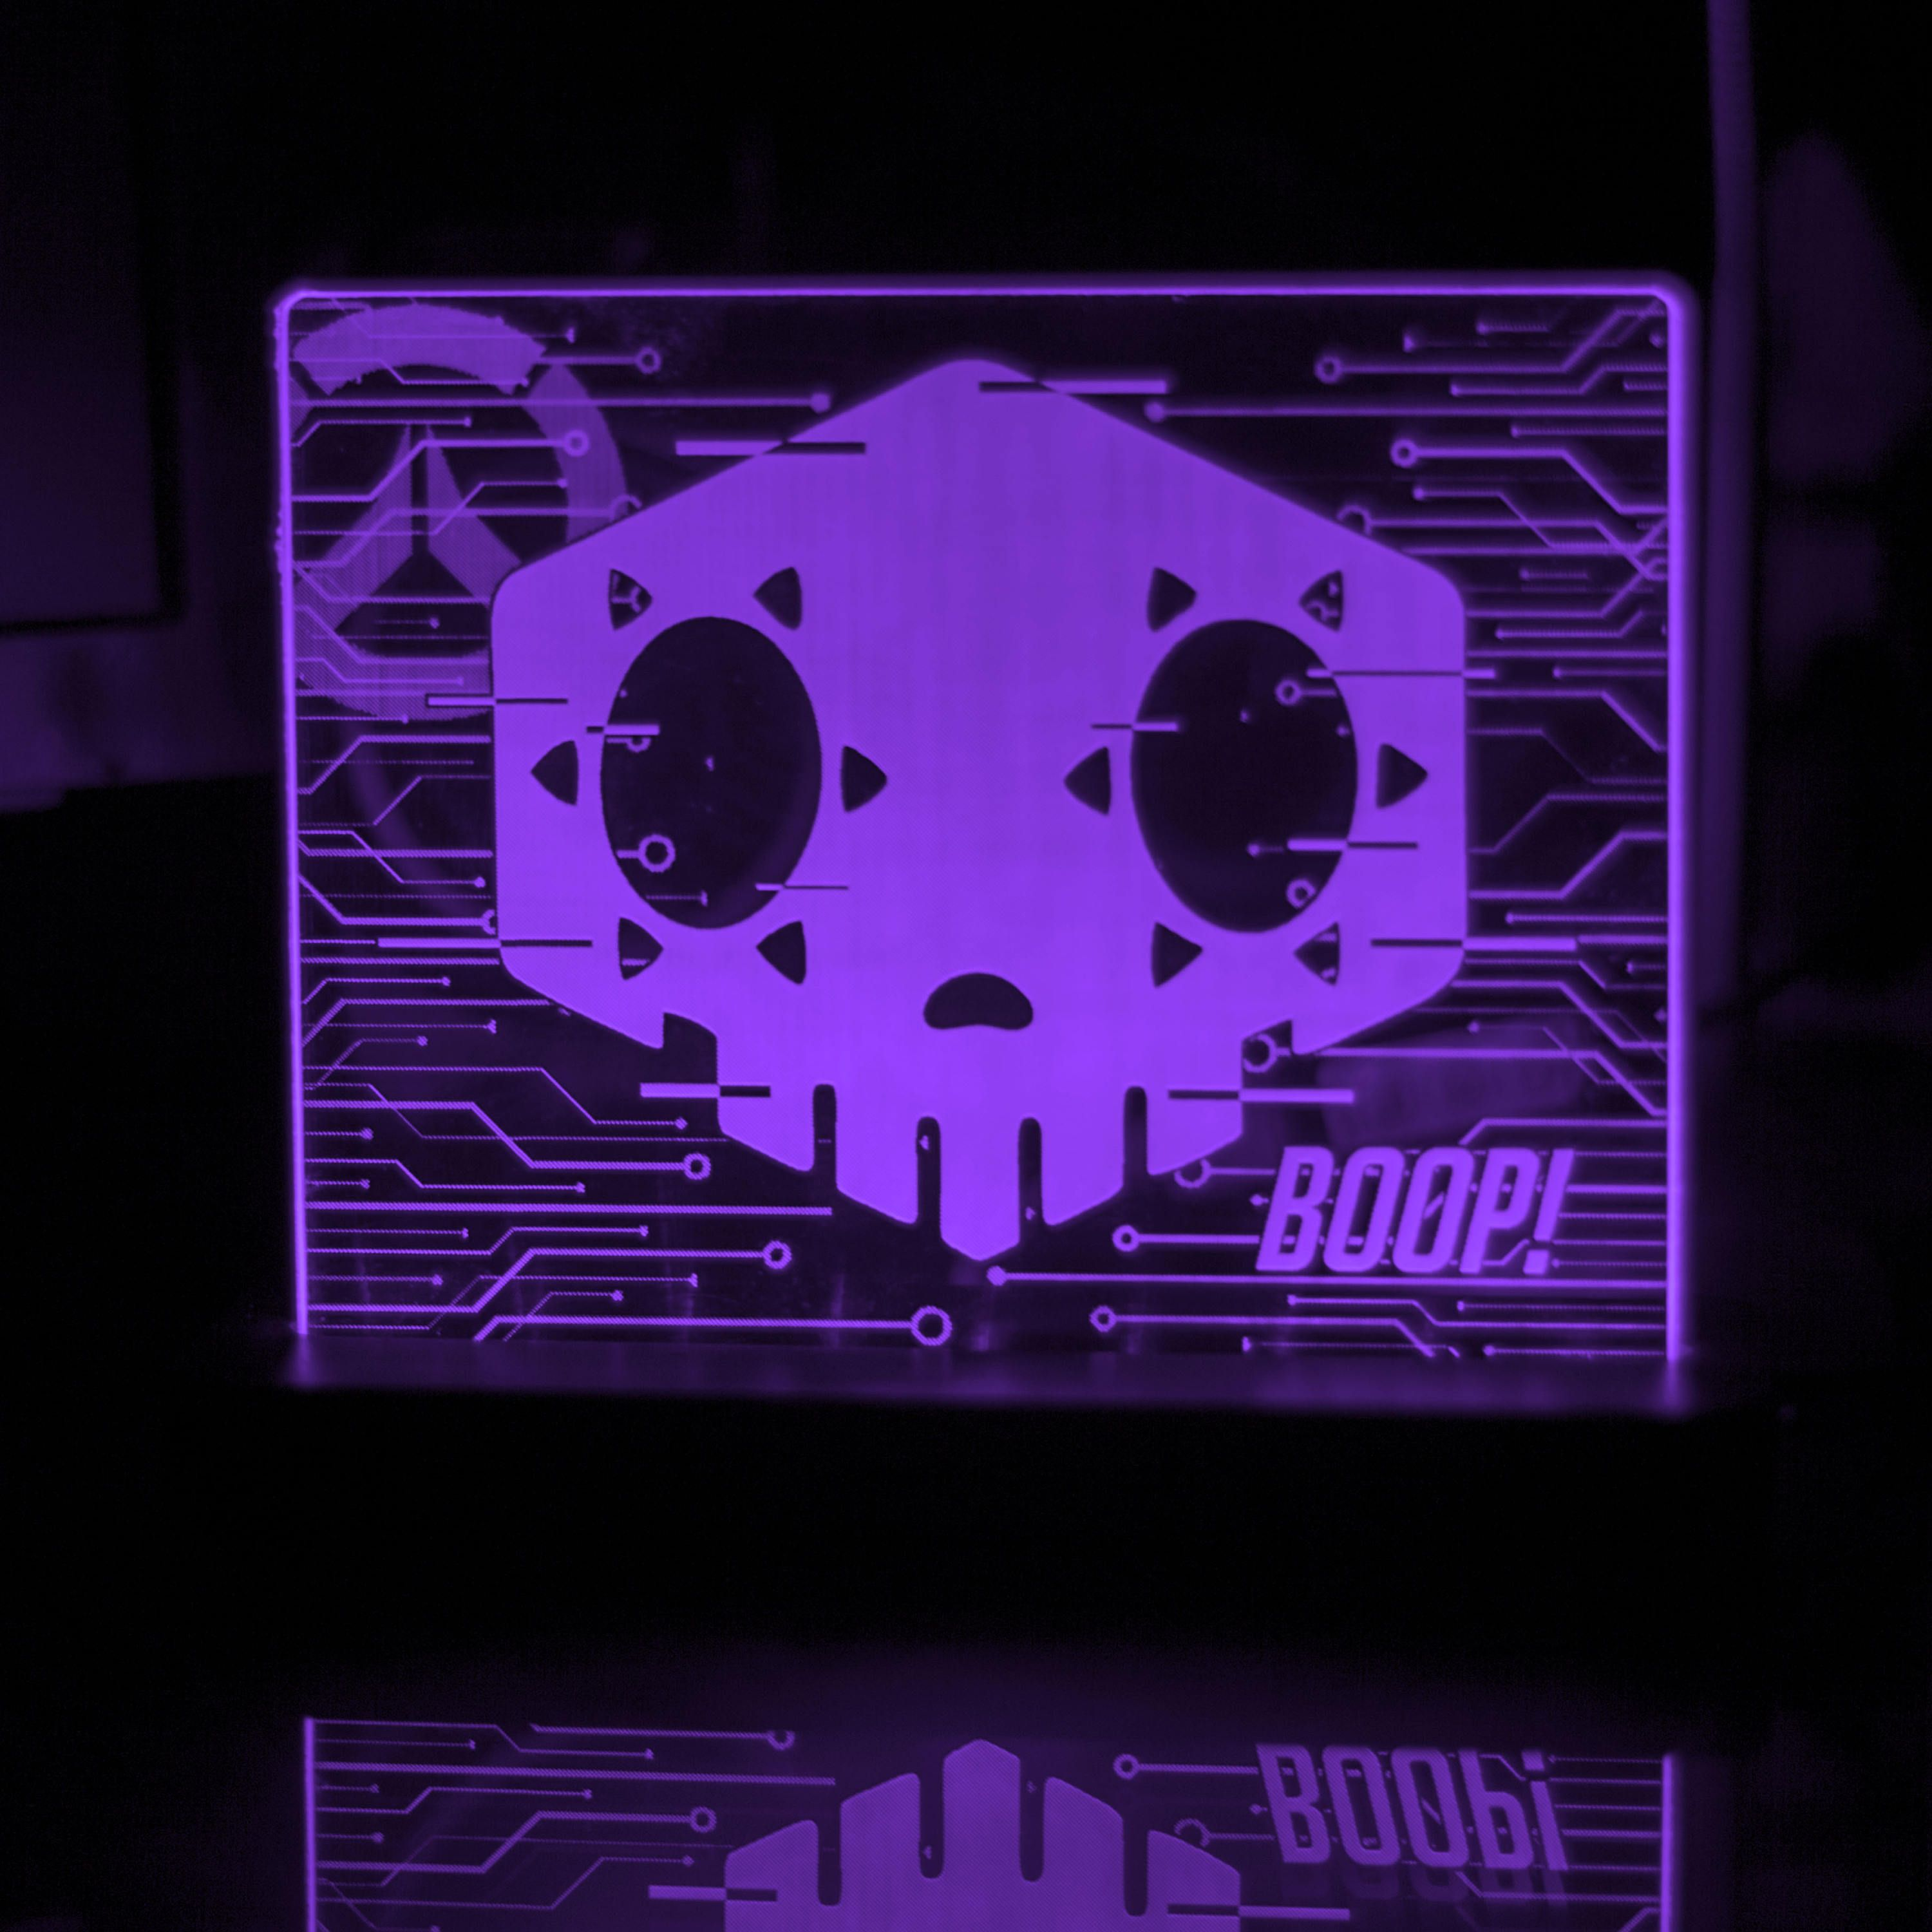 Overwatch Sombra Acrylic LED light sign, led display sign